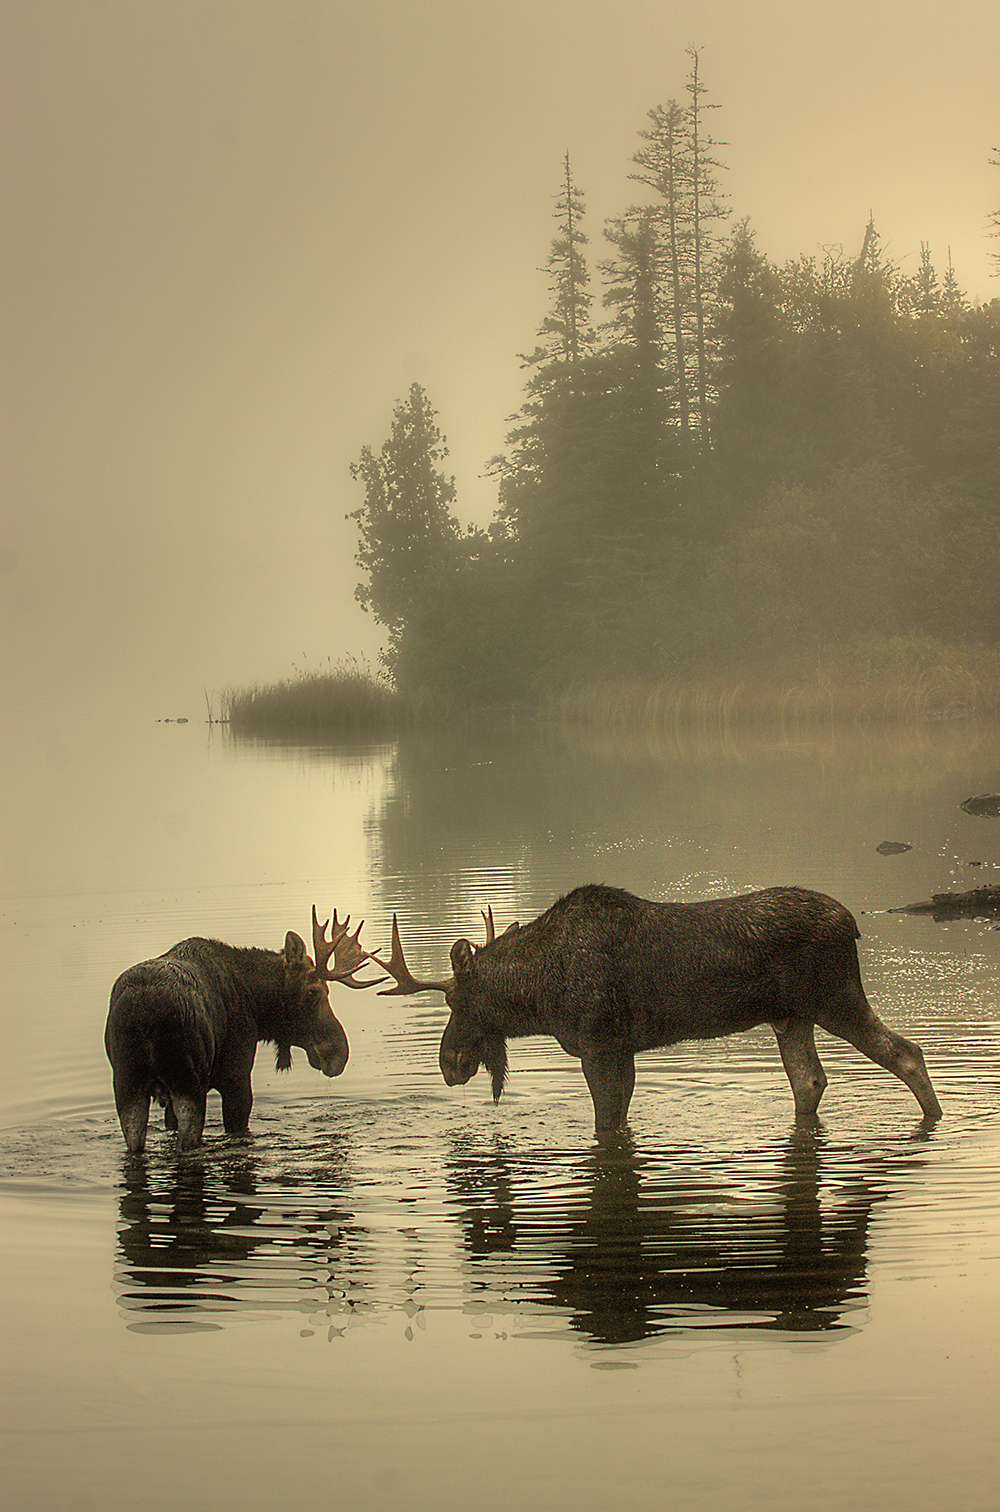 Two young bull moose test each other at Isle Royale National Park in Michigan. This photo was taken in Tobin Harbor as the moose locked horns. Photo by Carl TerHaar. Posted on Tumblr by the US Department of the Interior, 5/15/15.